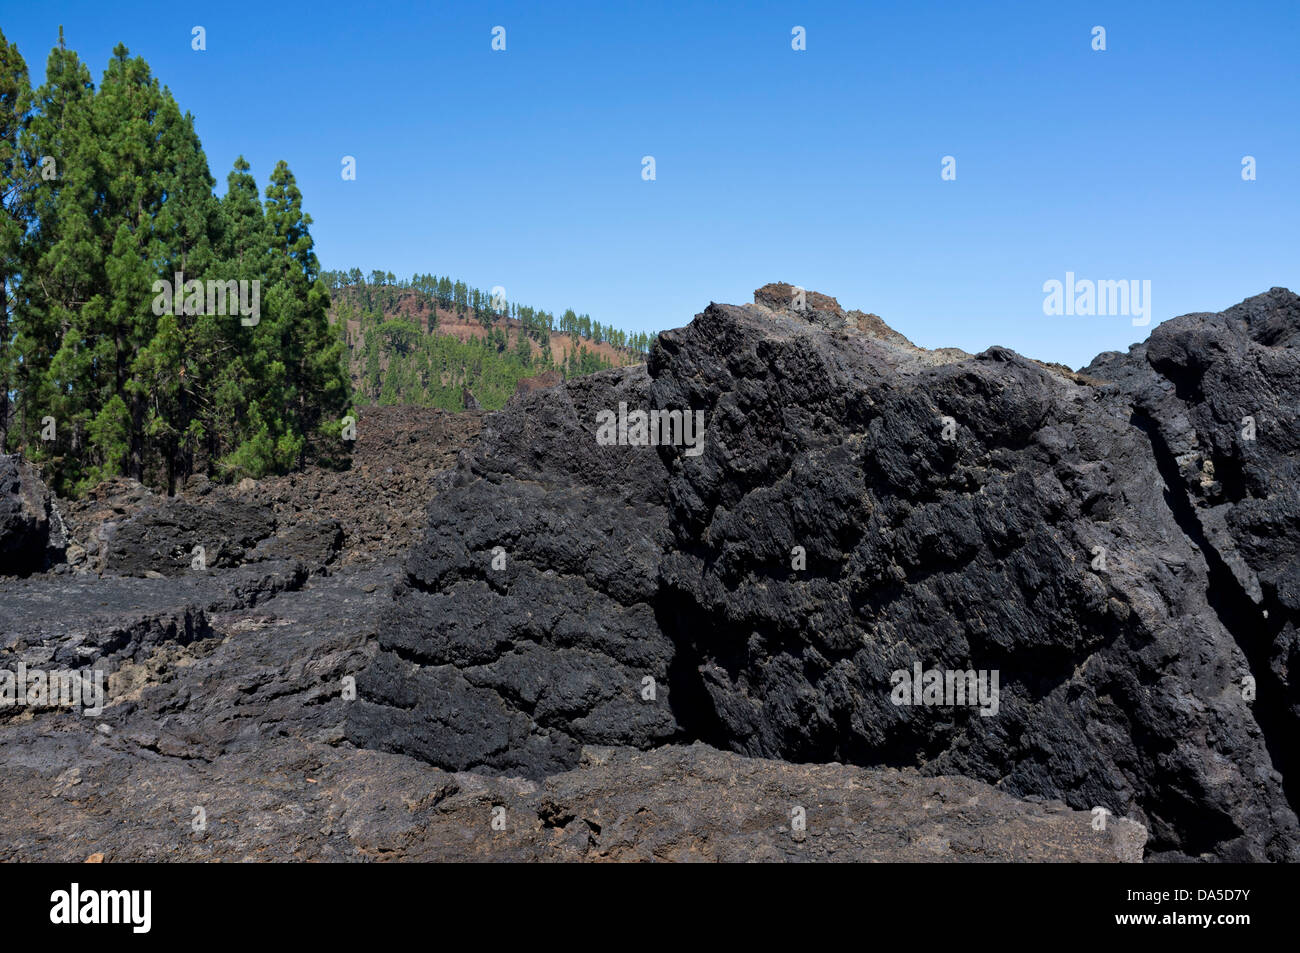 Solidified magma from the lava flow that erupted from Chinyero in 1909 on Tenerife, canary islands, Spain - Stock Image